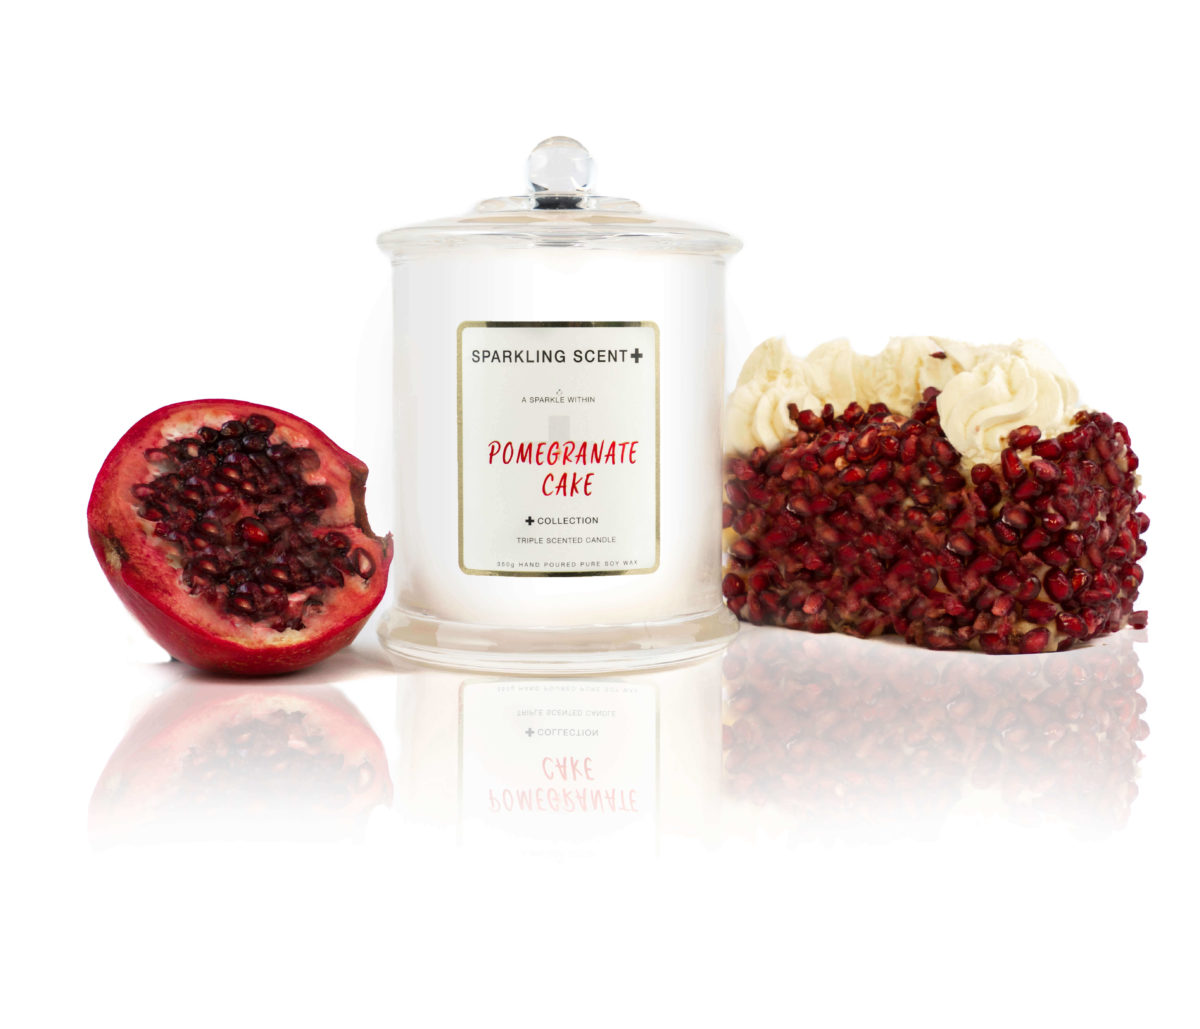 Glossy white shining French Gala Candle with a gold and white sticker. Surrounded by what you can imagine from the scent. Pomegranate creamy cake as well as a fresh pomegranate cut in half.